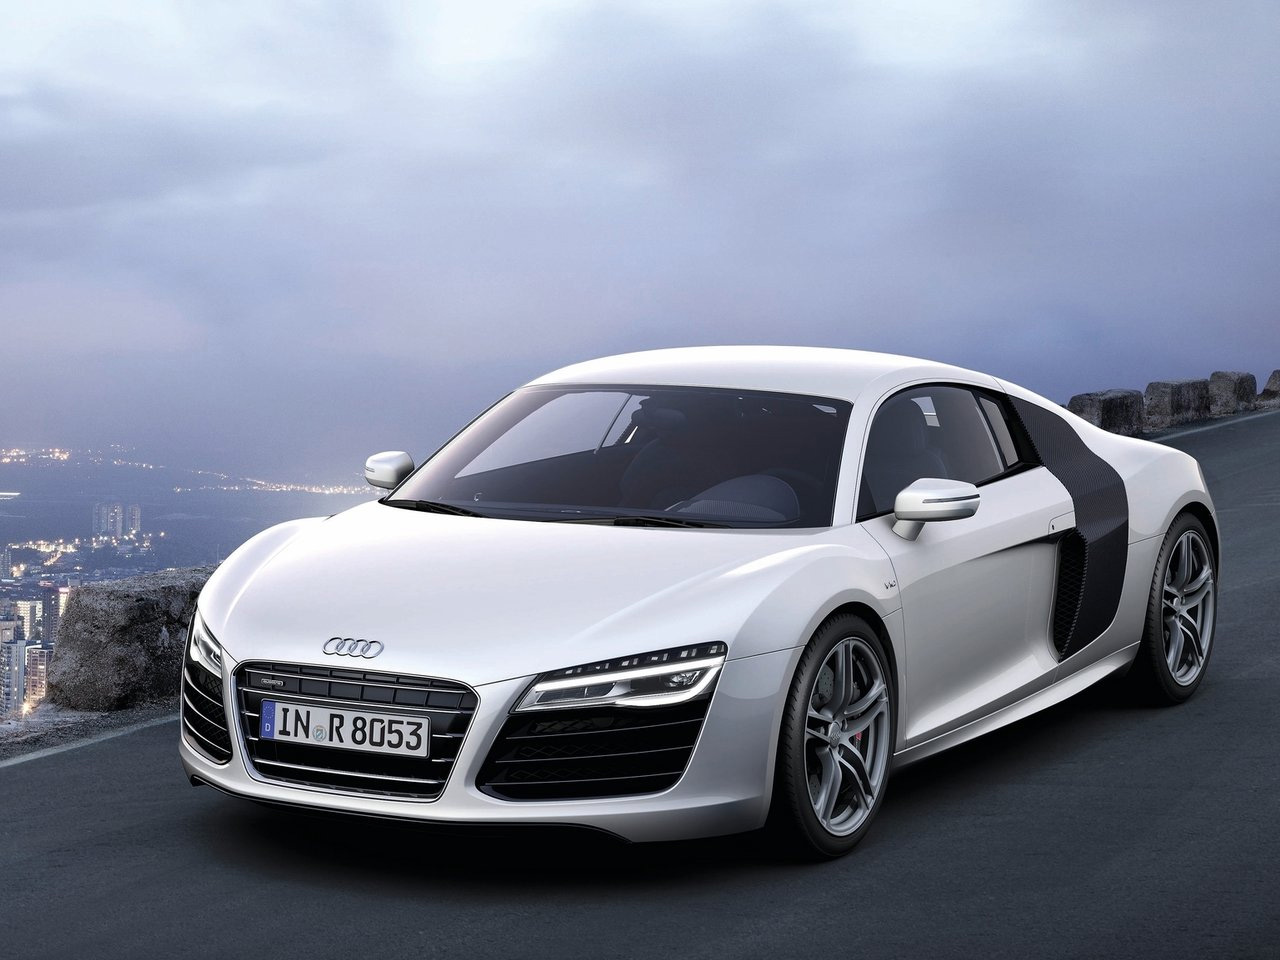 2013 audi r8 v10 silver wallpapers. Black Bedroom Furniture Sets. Home Design Ideas